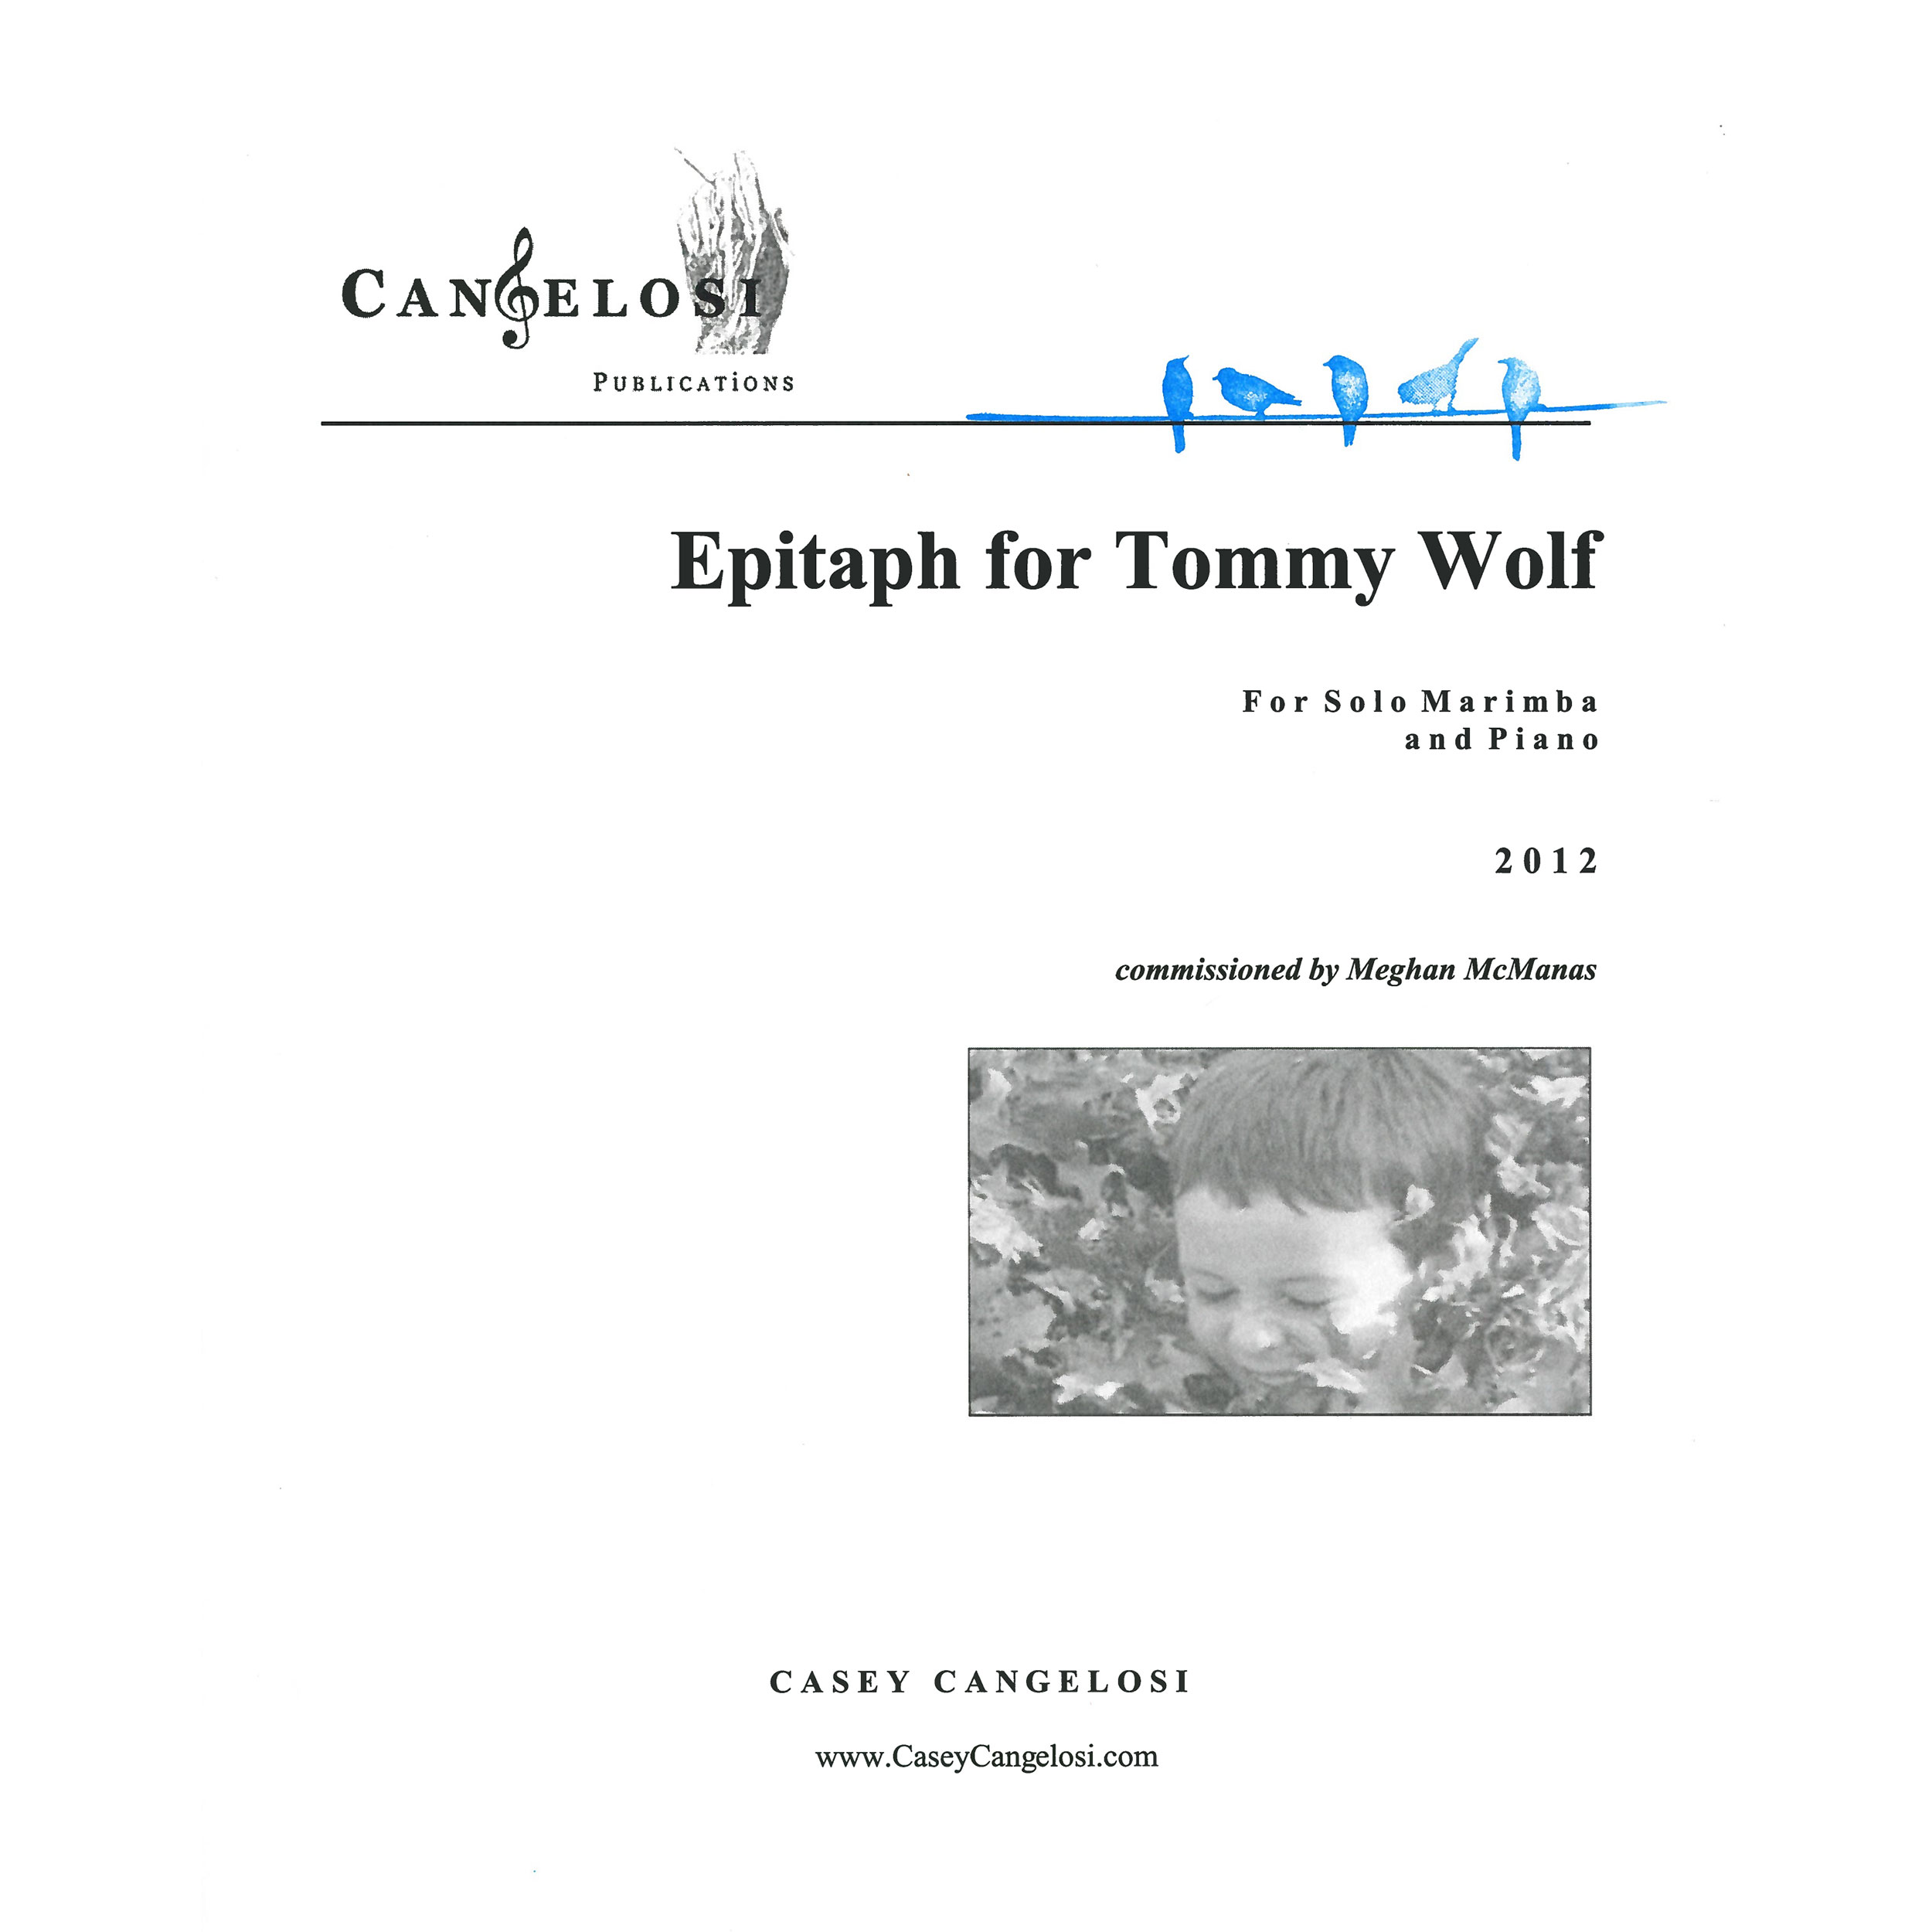 Epitaph for Tommy Wolf by Casey Cangelosi